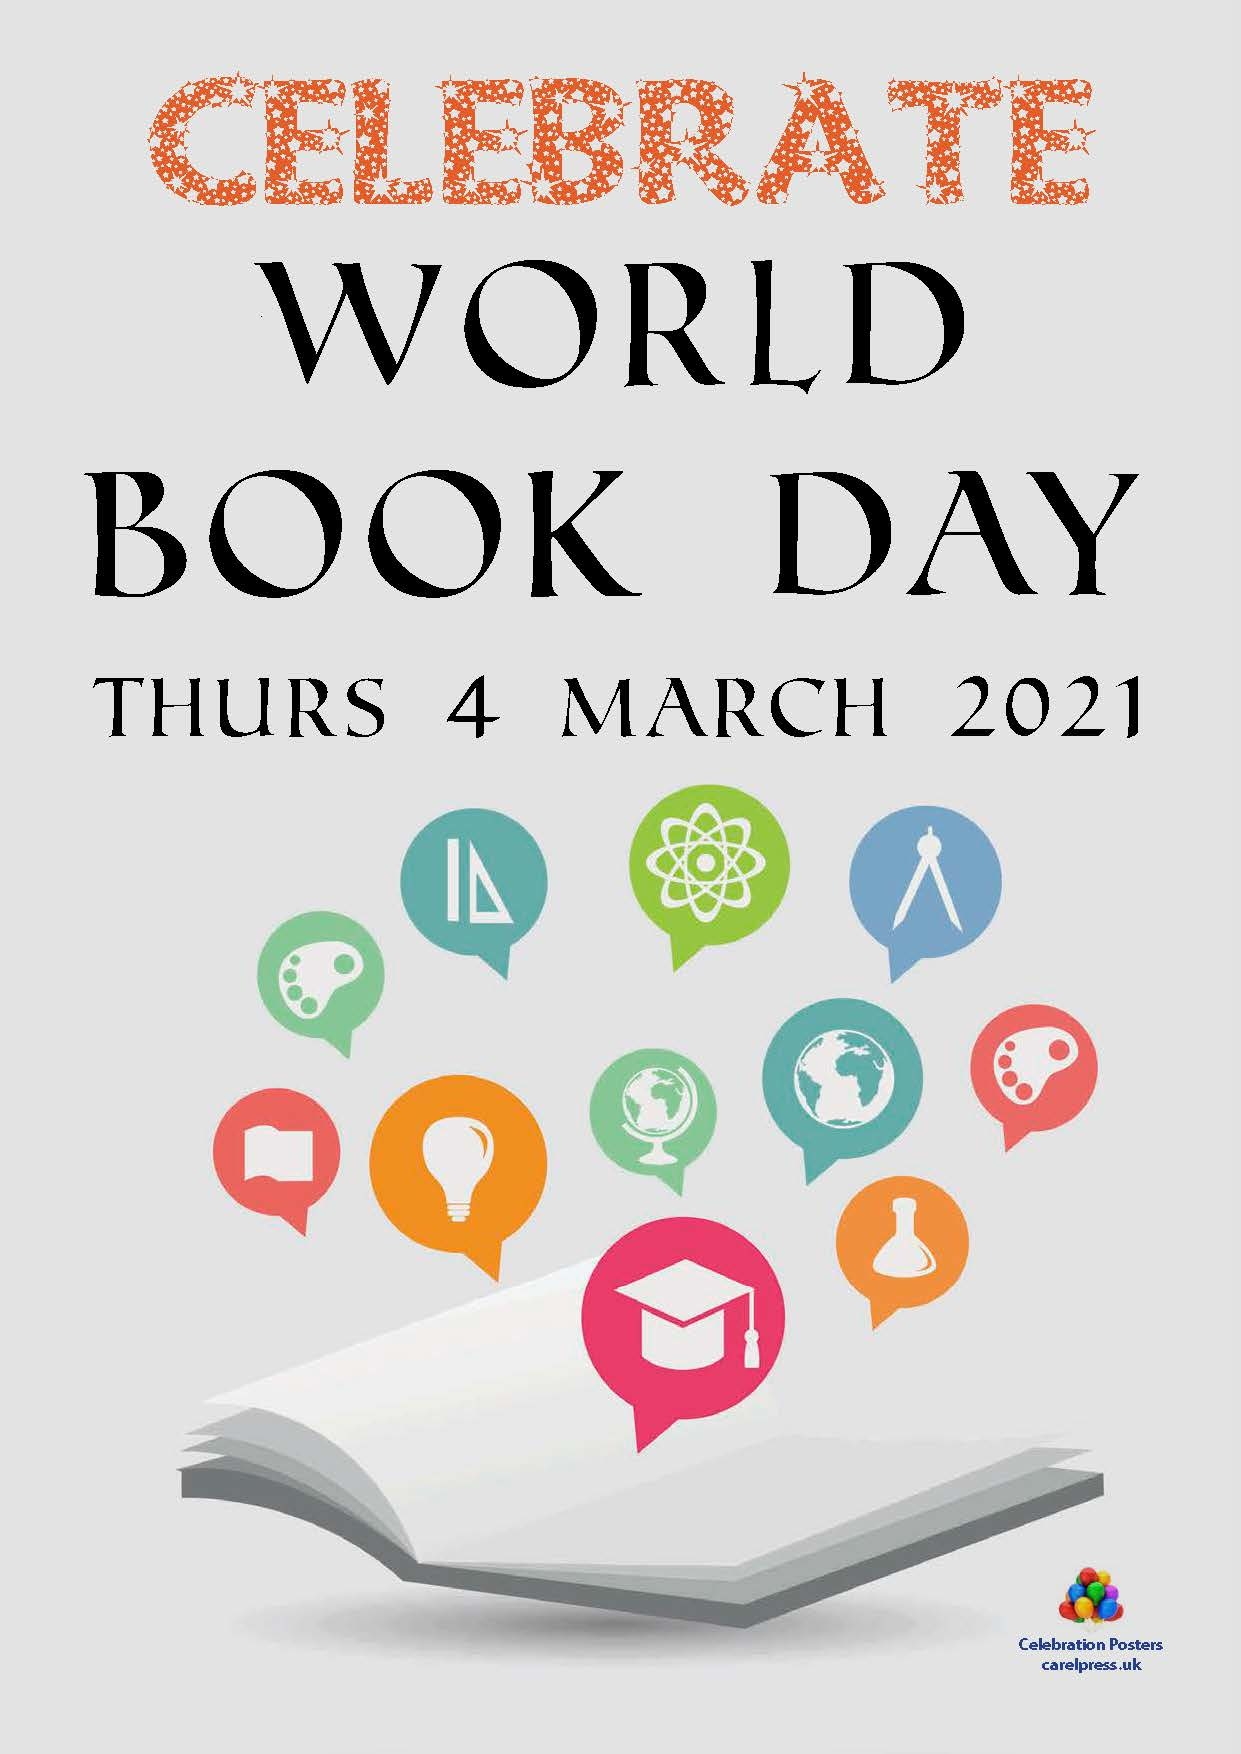 PCL330 World Book Day 4 March 2021